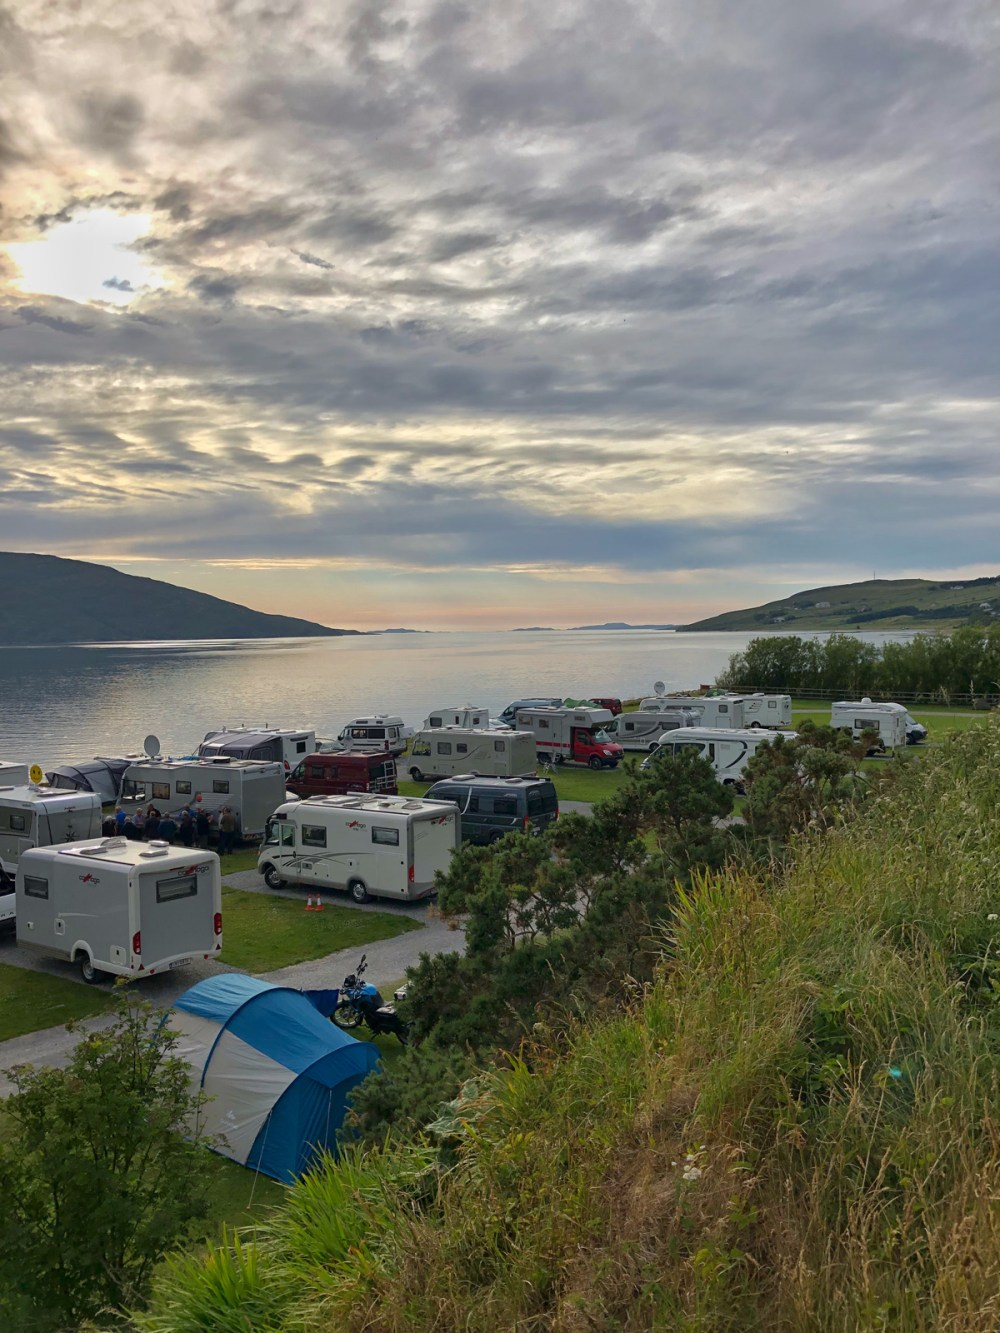 Splodz Blogz | NC500 - Broomfield Holiday Park, Ullapool